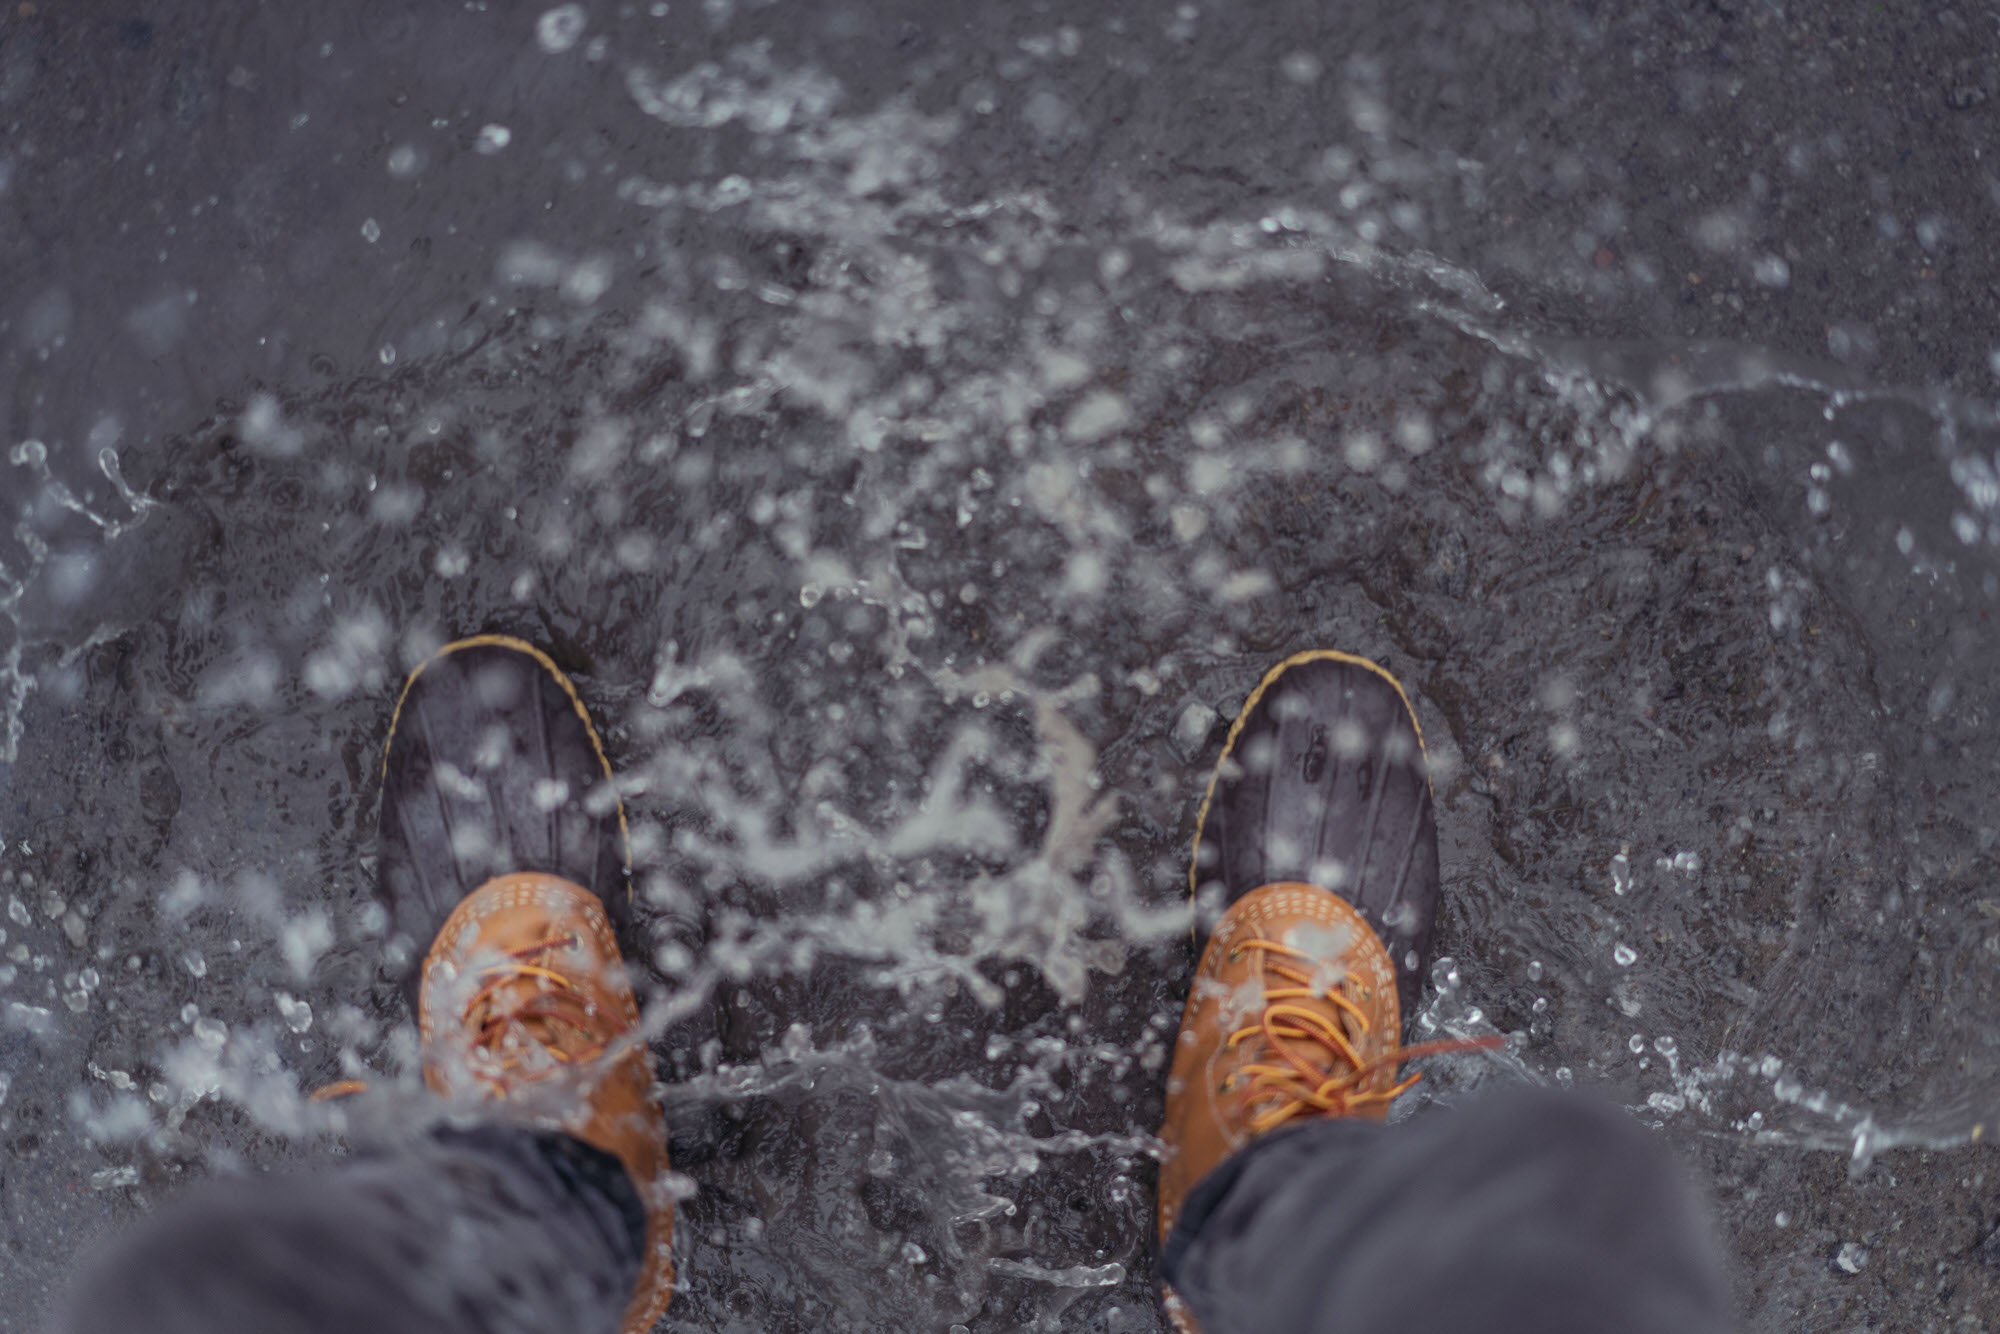 LL Bean Boots splashing in water in Hamar, Norway